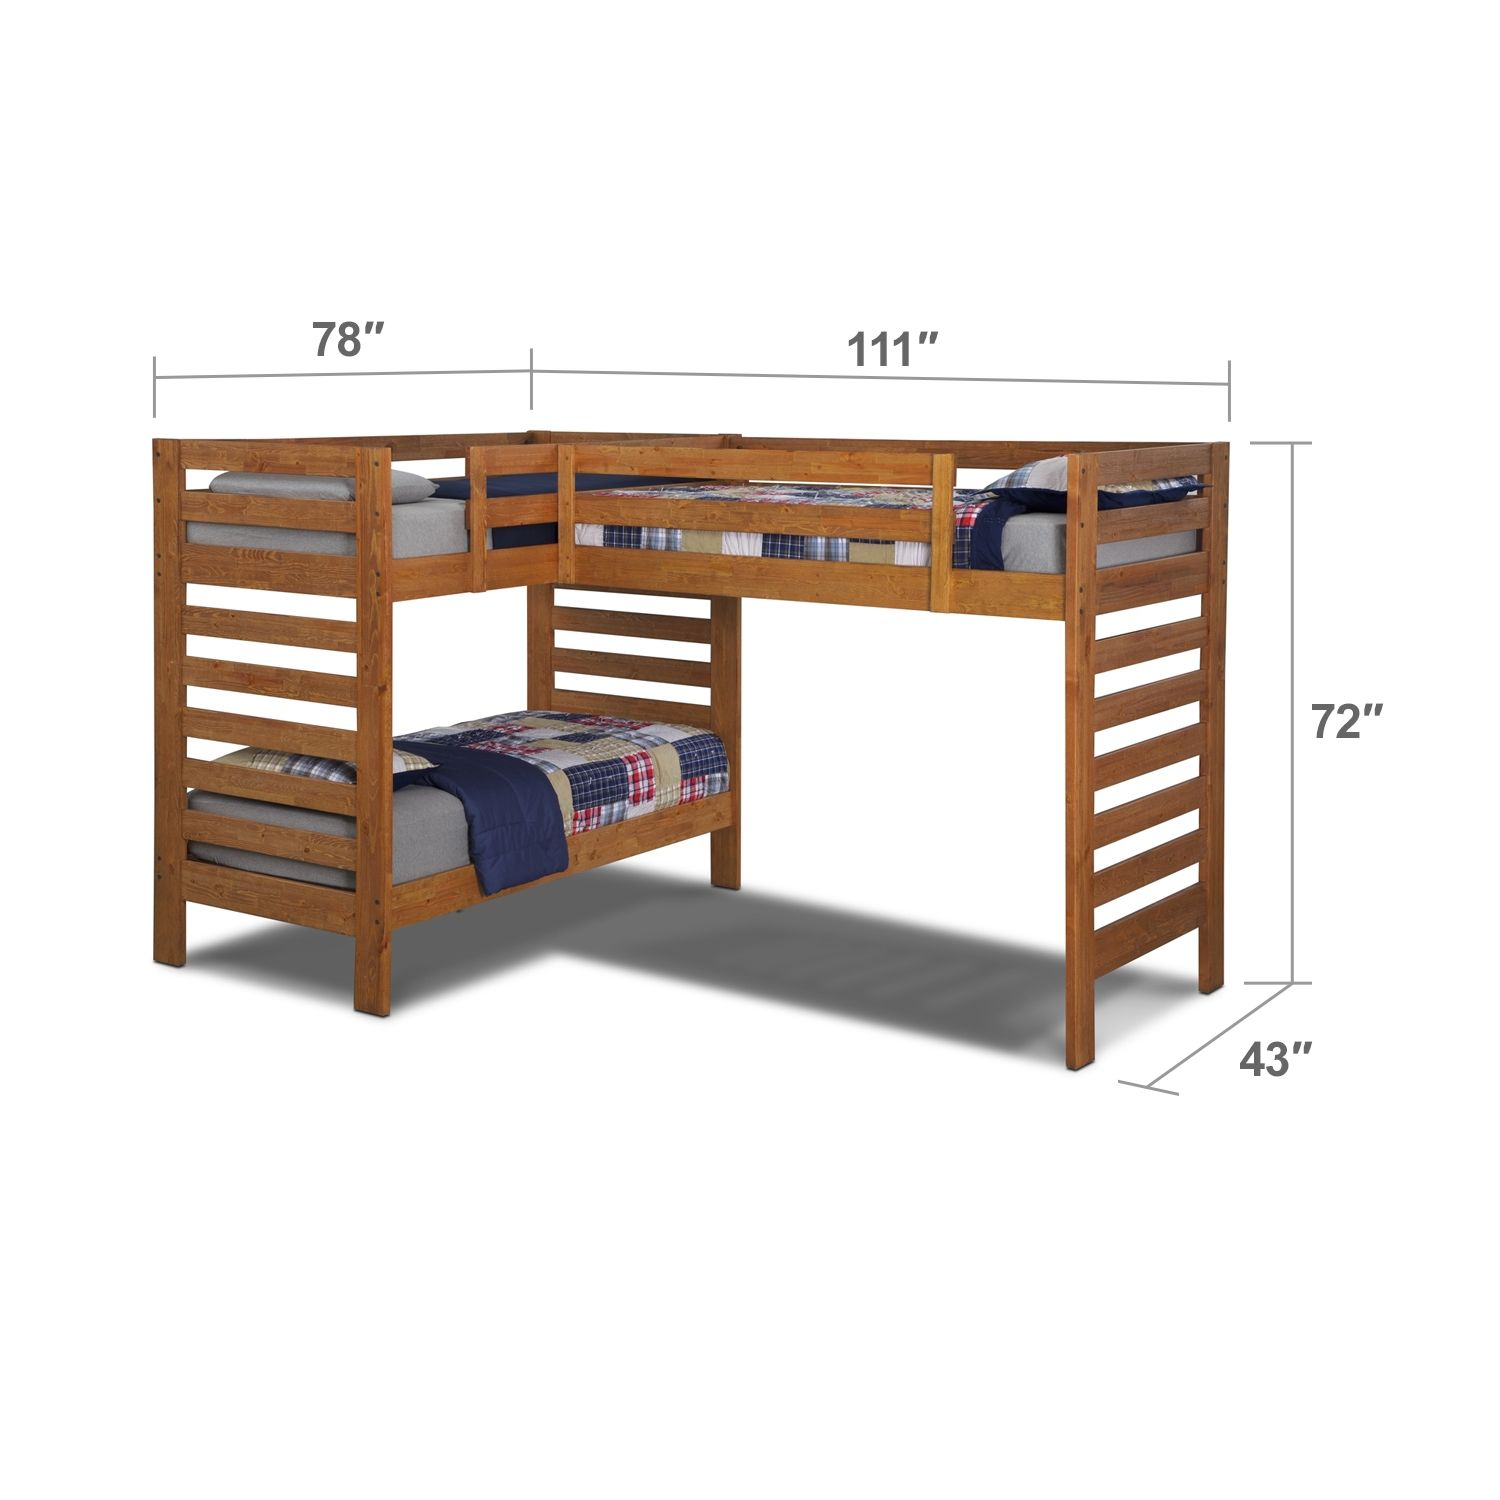 L Formed Loft Bunk Beds Drew III Kids Furniture Twin L-Shaped Loft Bed | Furniture.com